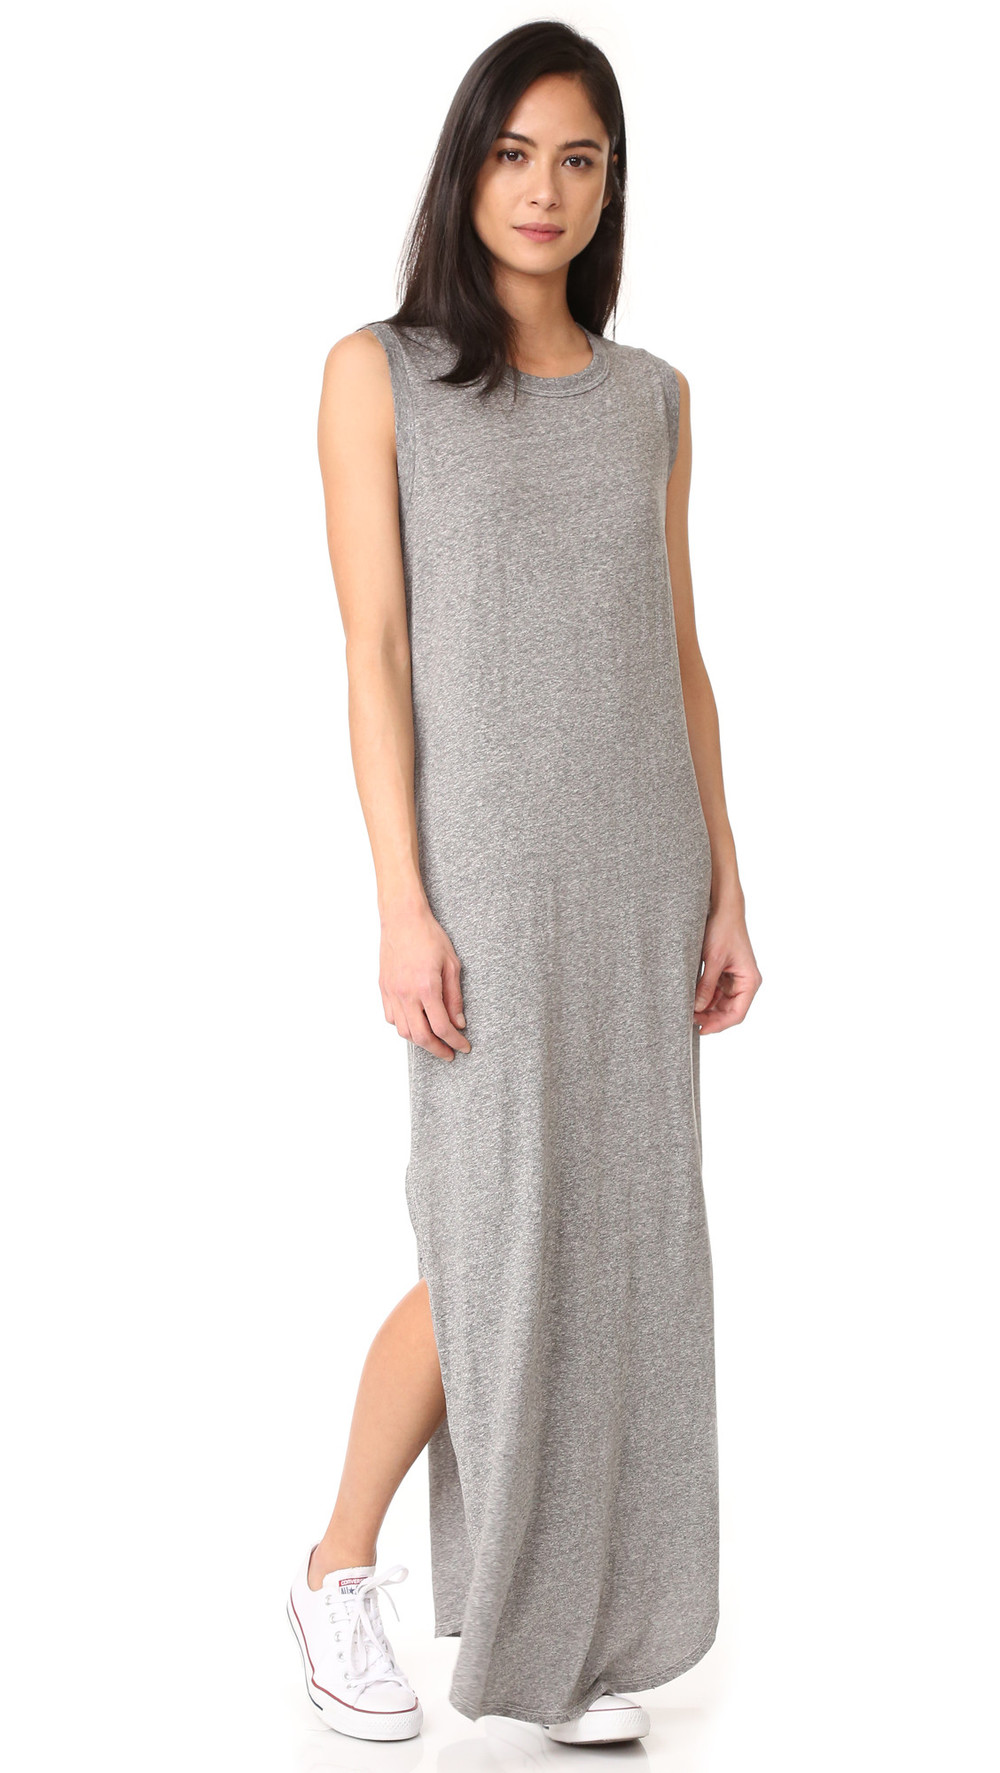 THE GREAT. The Great. The Sleeveless Knotted Tee Dress - Heather Grey